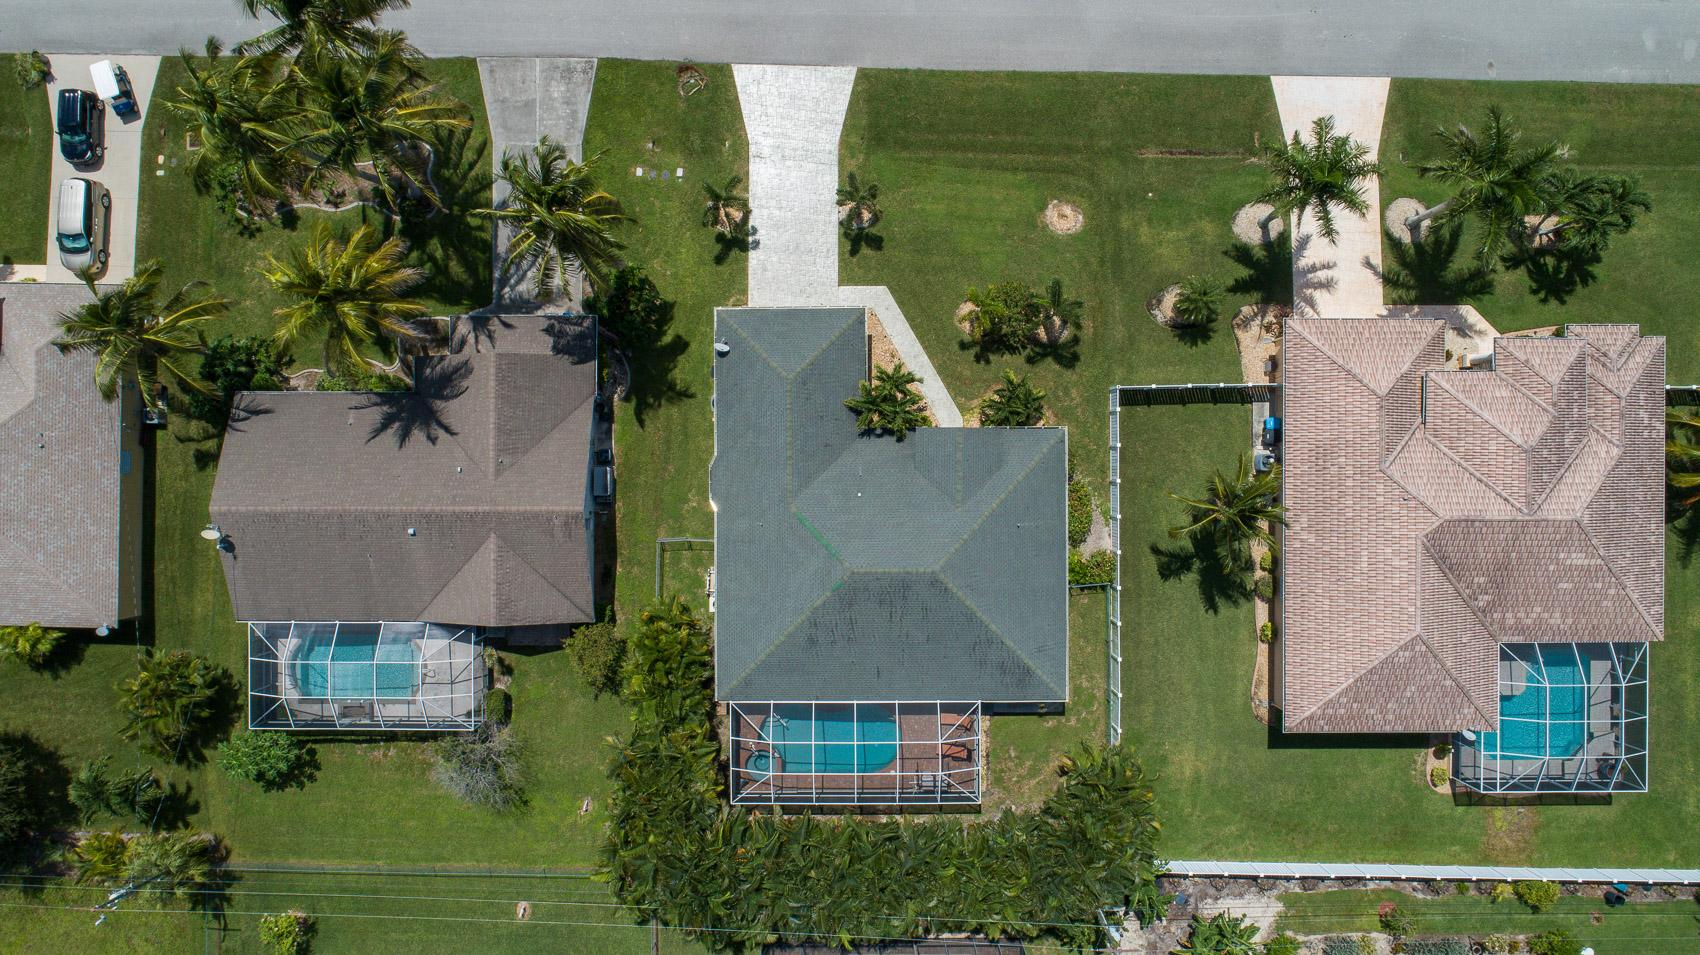 Aerial view of the backyard